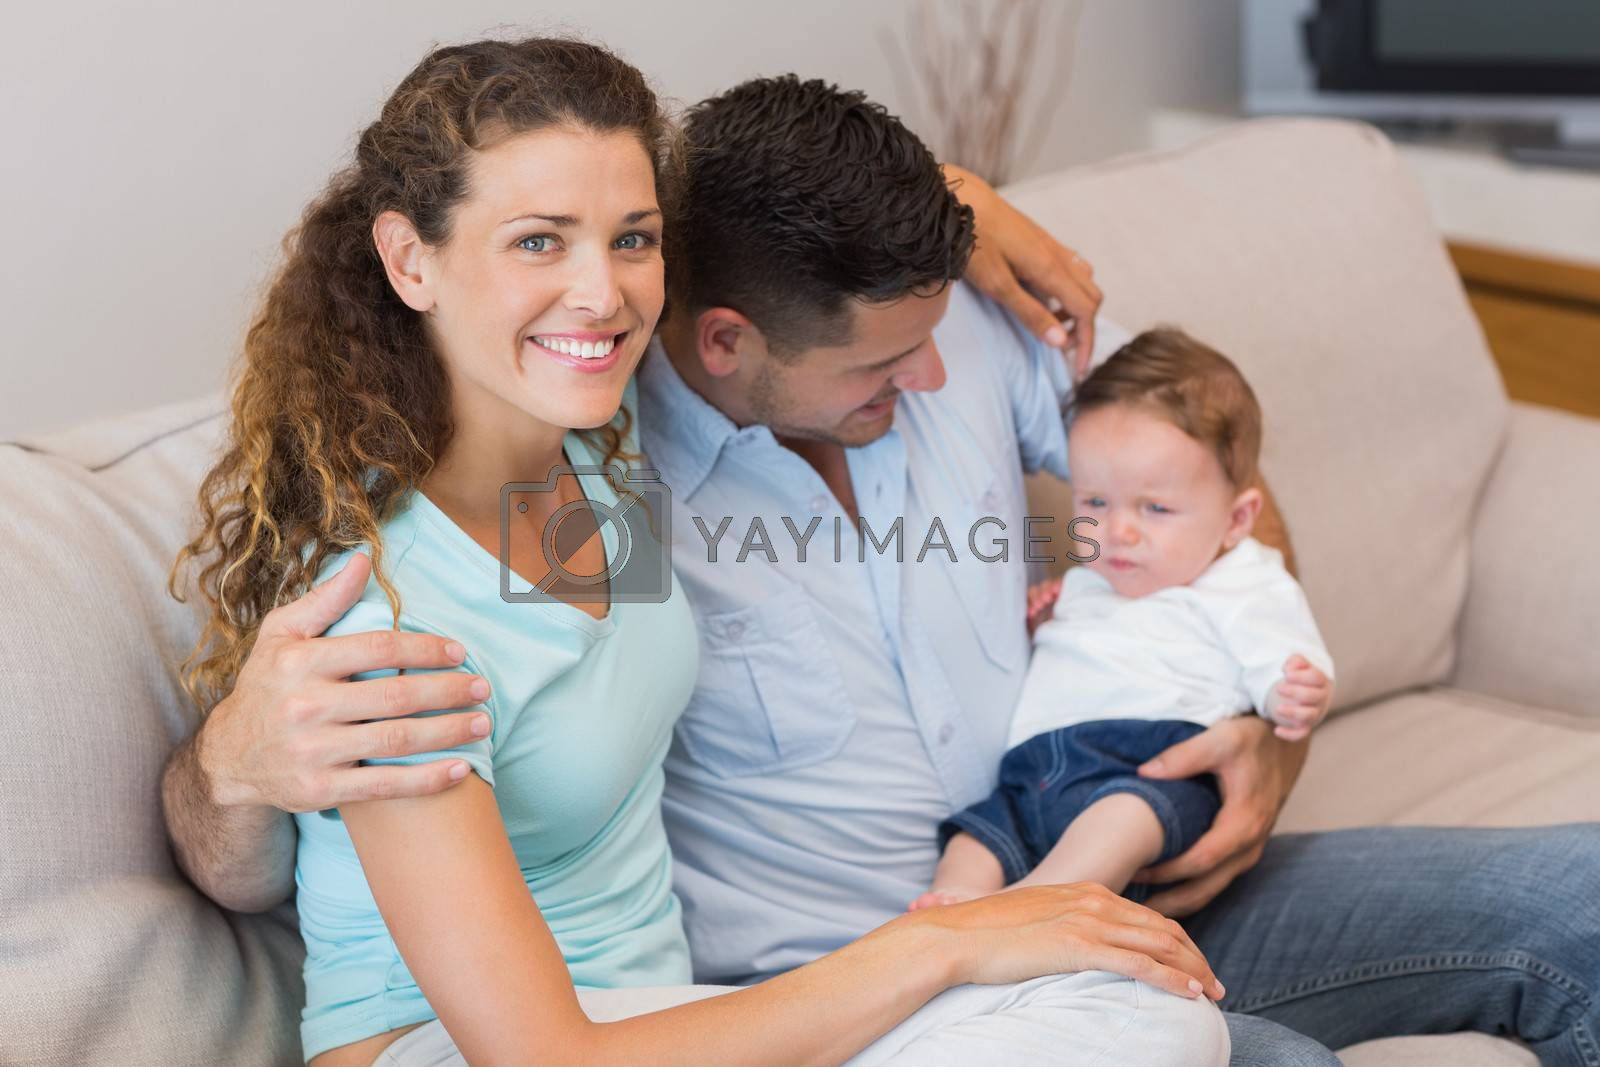 Portrait of happy woman with man holding baby in living room